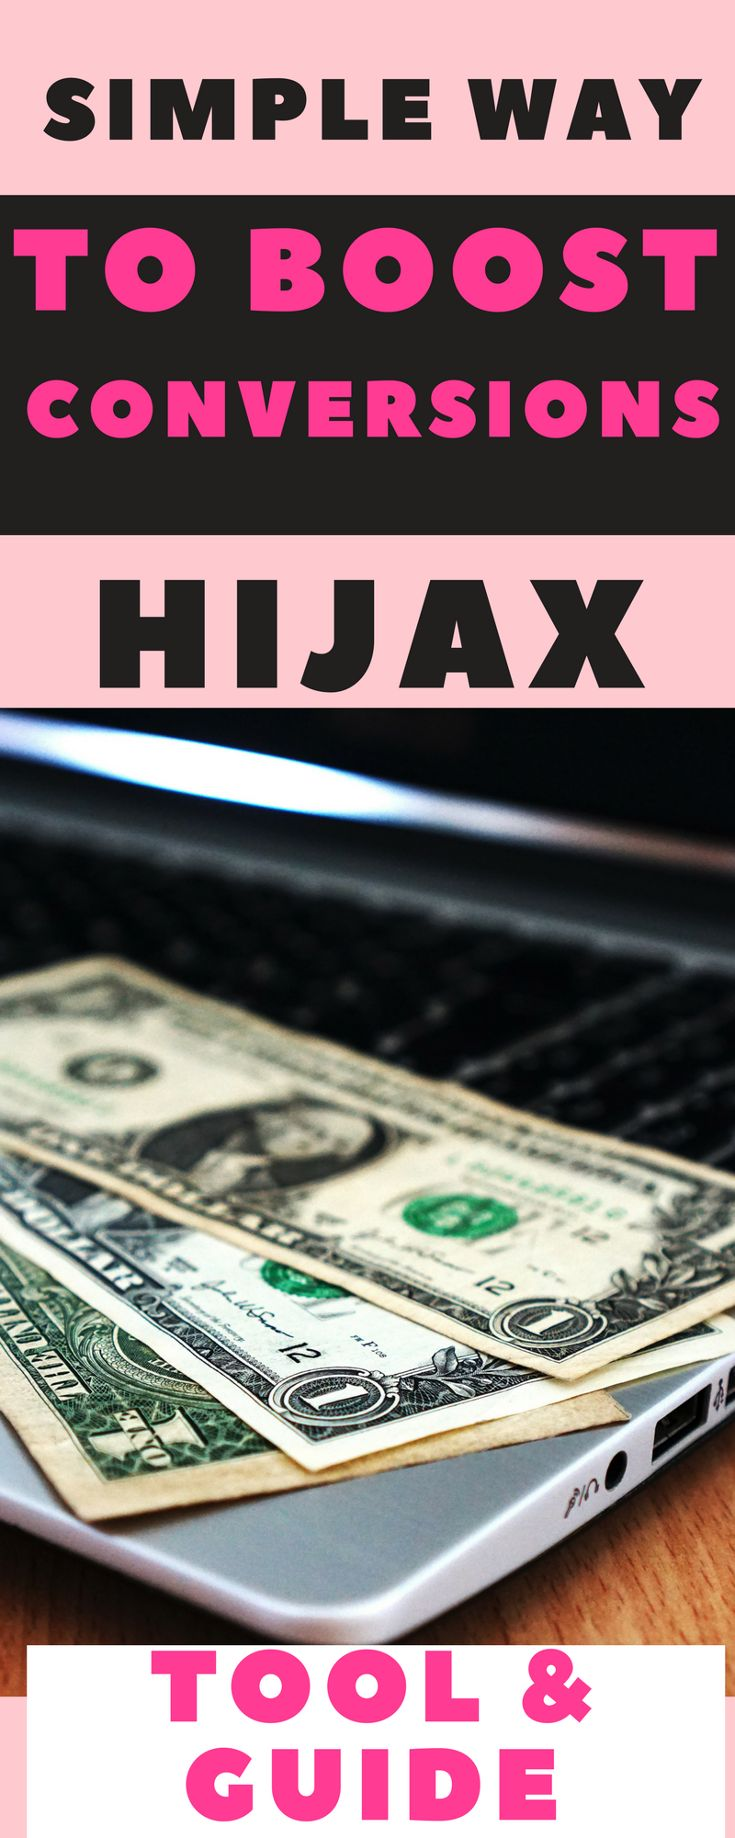 The Hijax tool is an easy way to drastically increase your online sales on affiliate products and your own digital products by removing useless landing pages. It also improves your click through rate on all your links by incentizing the sale. Learn why Hijax can make you more passive profits with minimal effort. #MakeMoneyOnline #Hijax